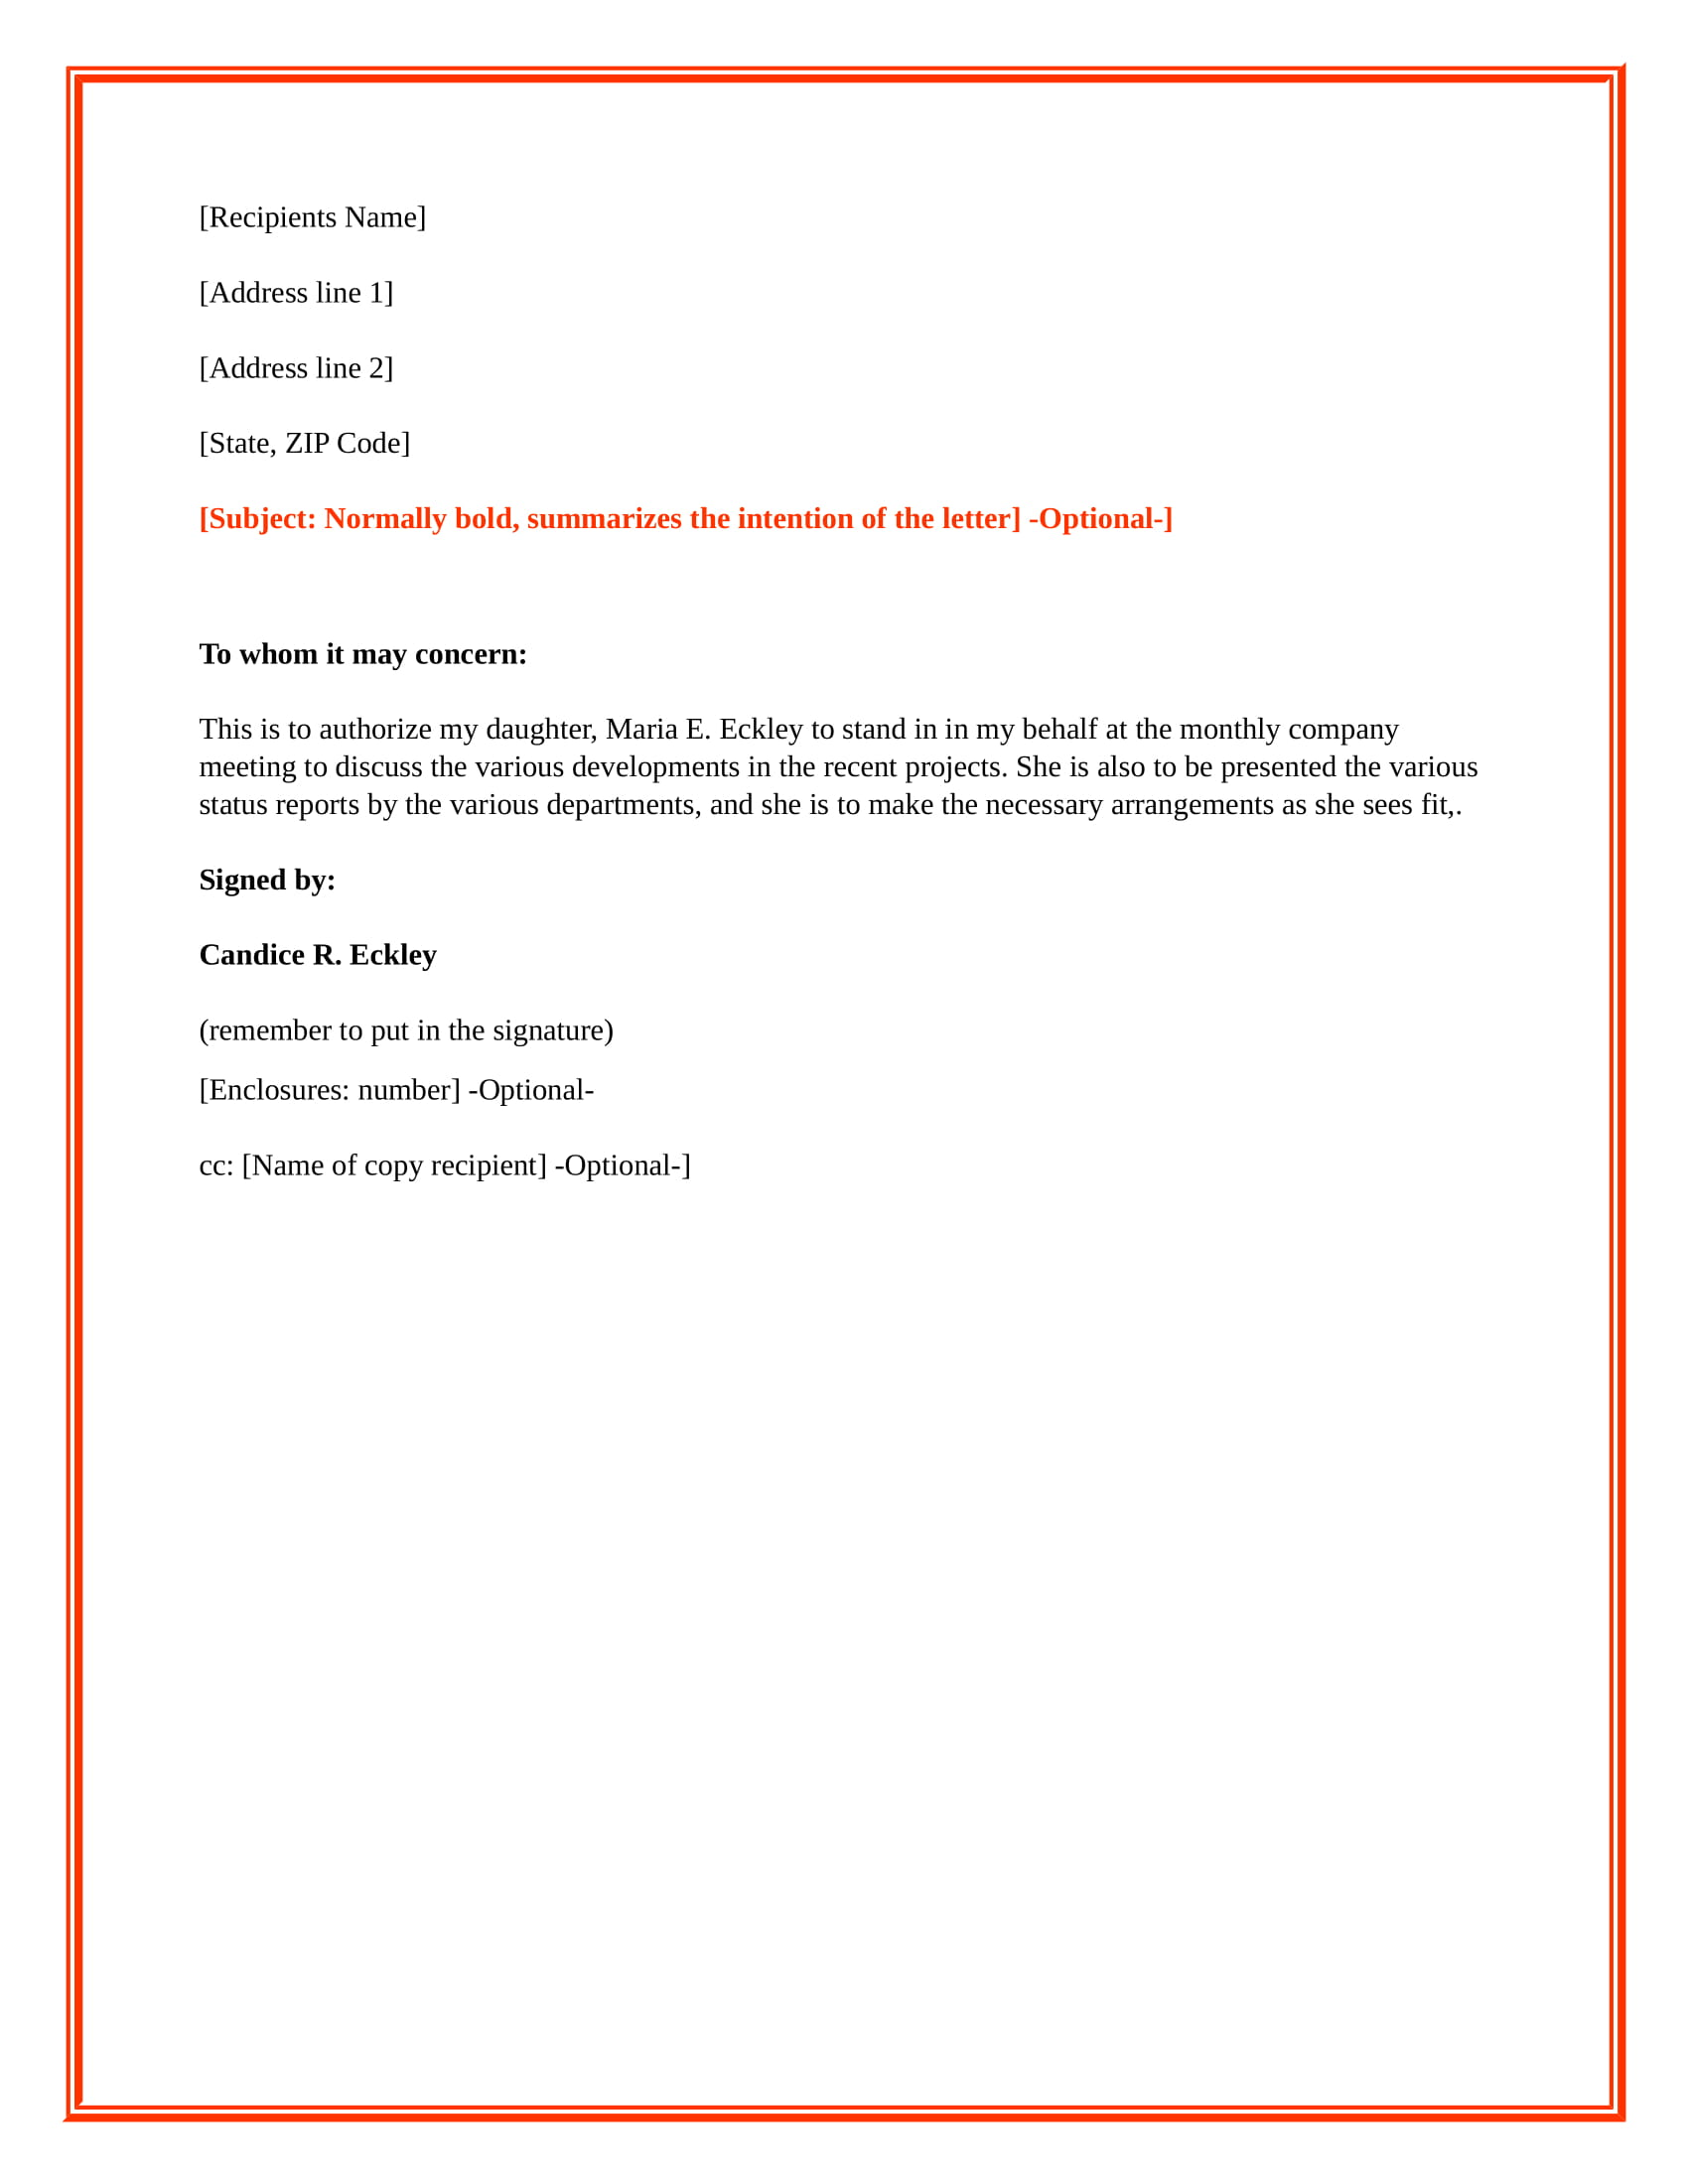 letter of authorization examples 9 financial authorization letter examples pdf examples 18089 | Authorization Letter Sample to Act on Behalf